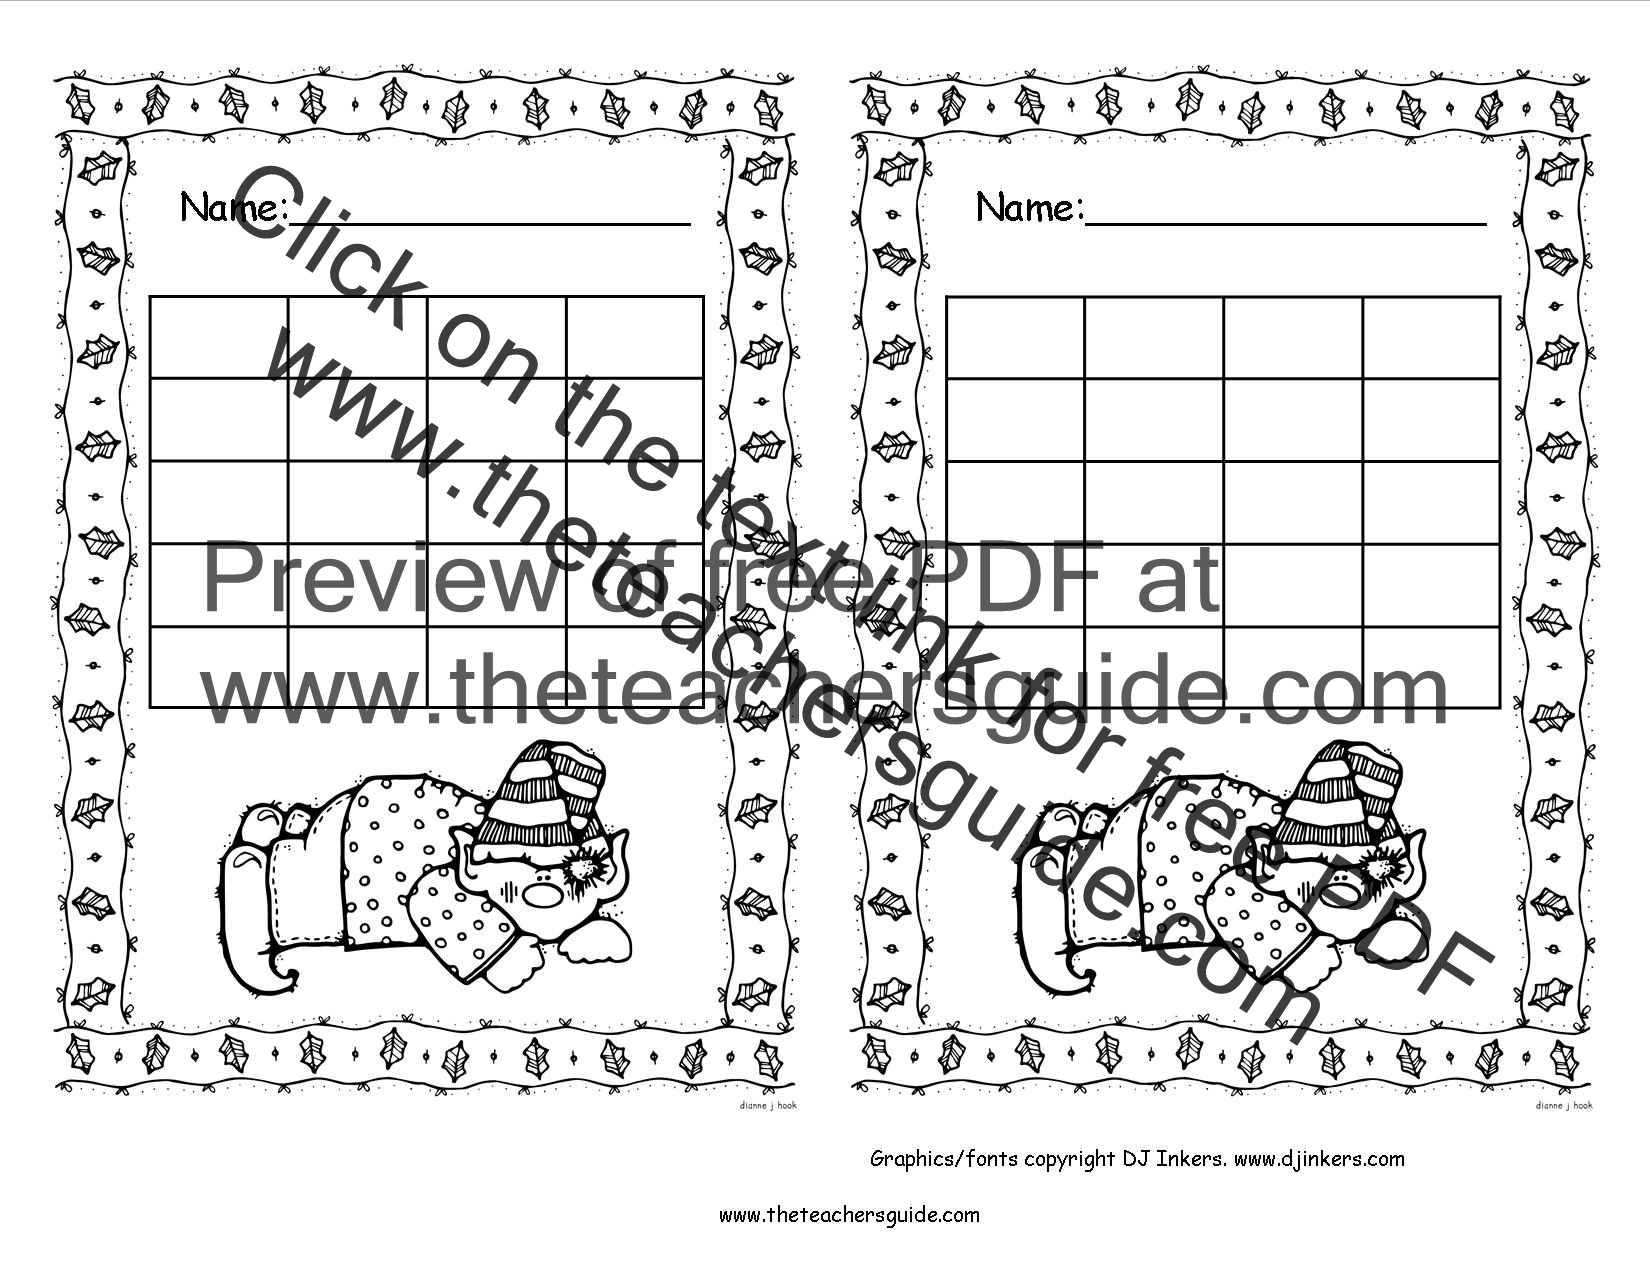 Homework reward chart – Sample Star Chart Template